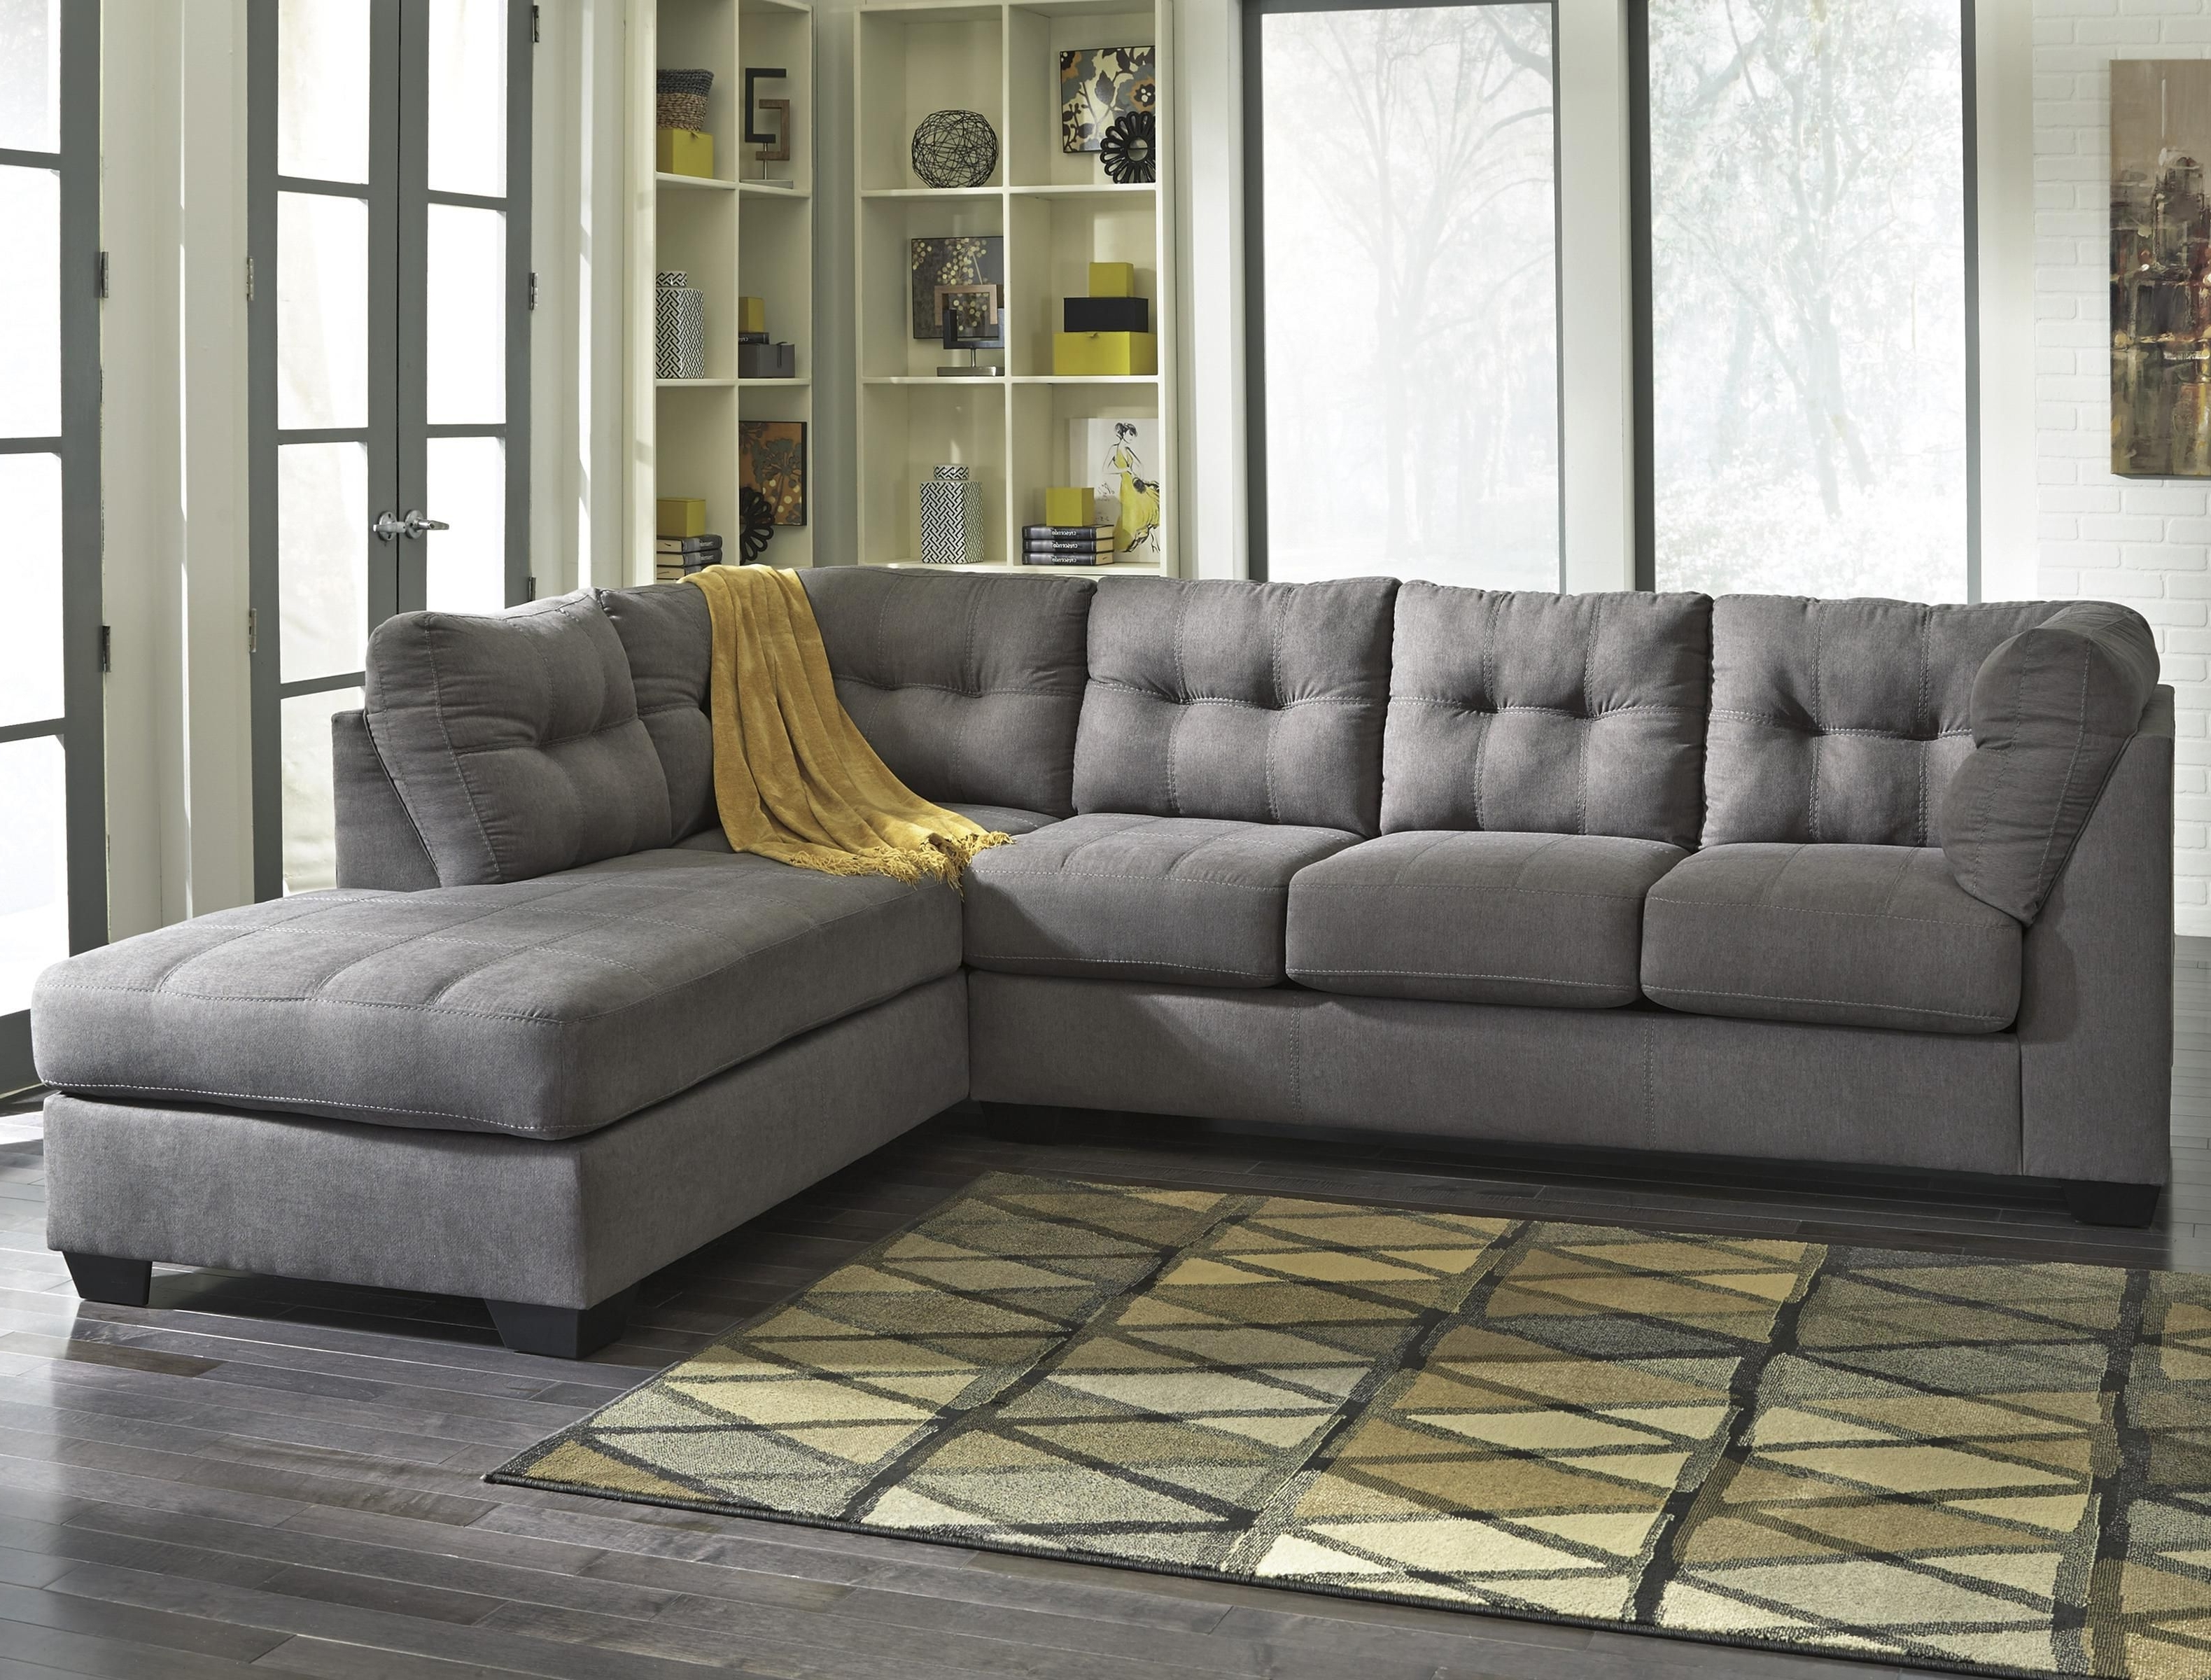 Sectional Sofas At Buffalo Ny For Most Up To Date 2 Piece Sectional W/ Sleeper Sofa & Chaise Maier – Charcoal (View 5 of 15)